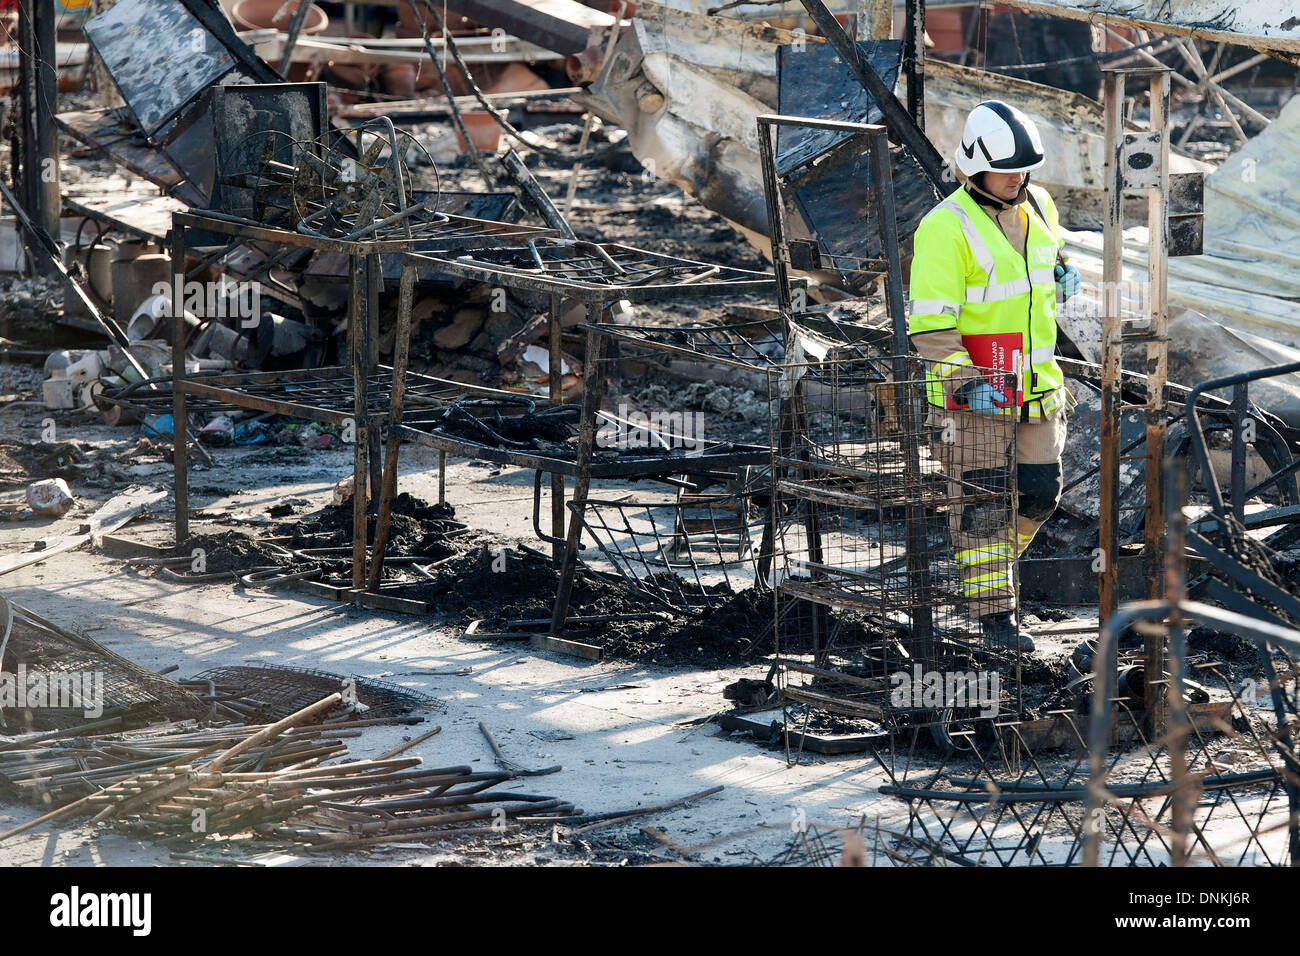 A fire investigator walks through the scene of a fire. - Stock Image